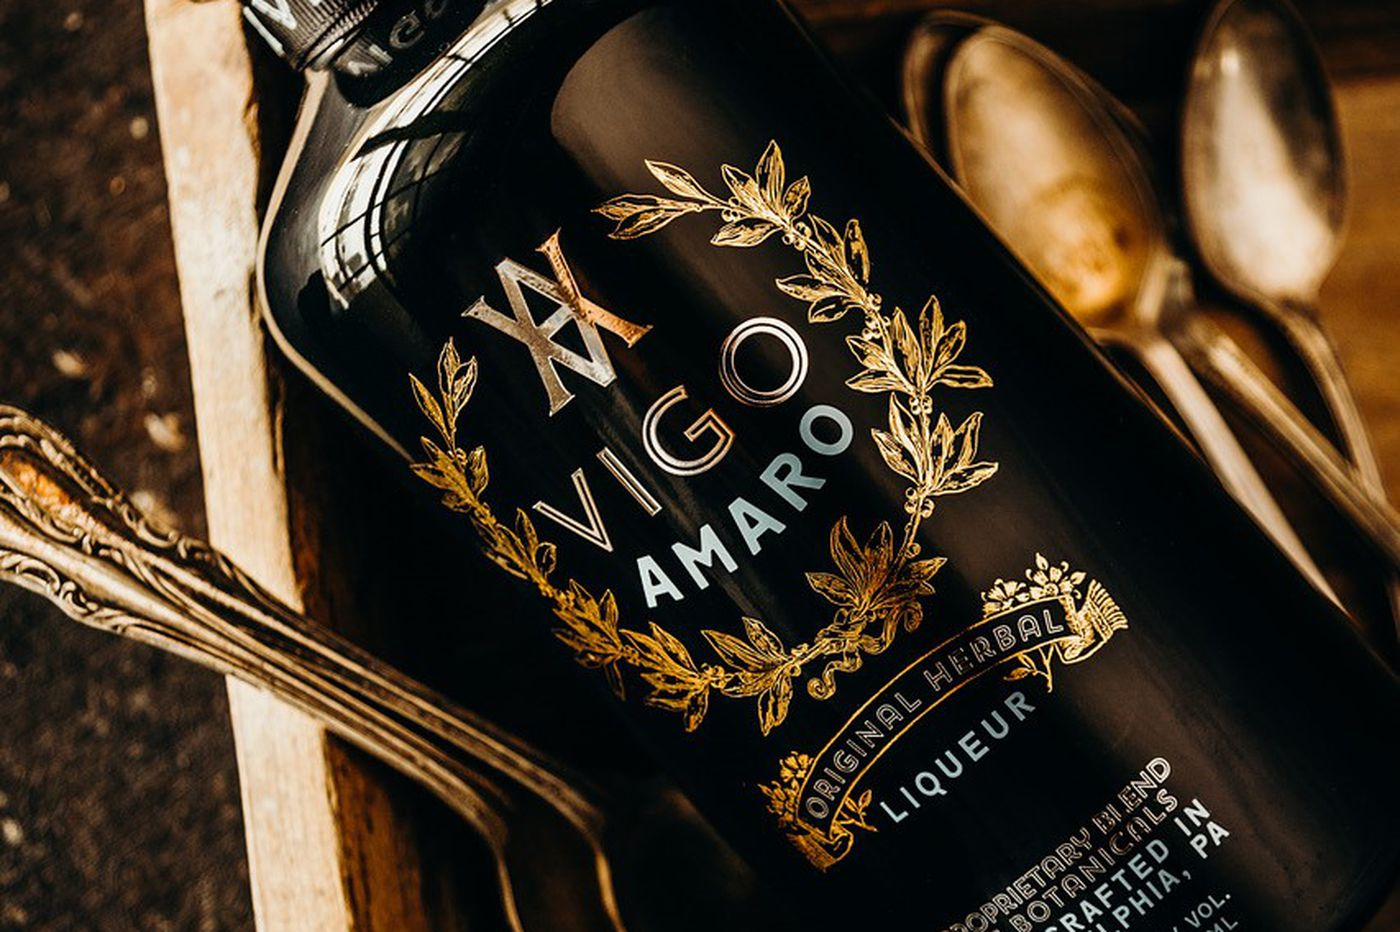 Philadelphia Distilling now making amaro